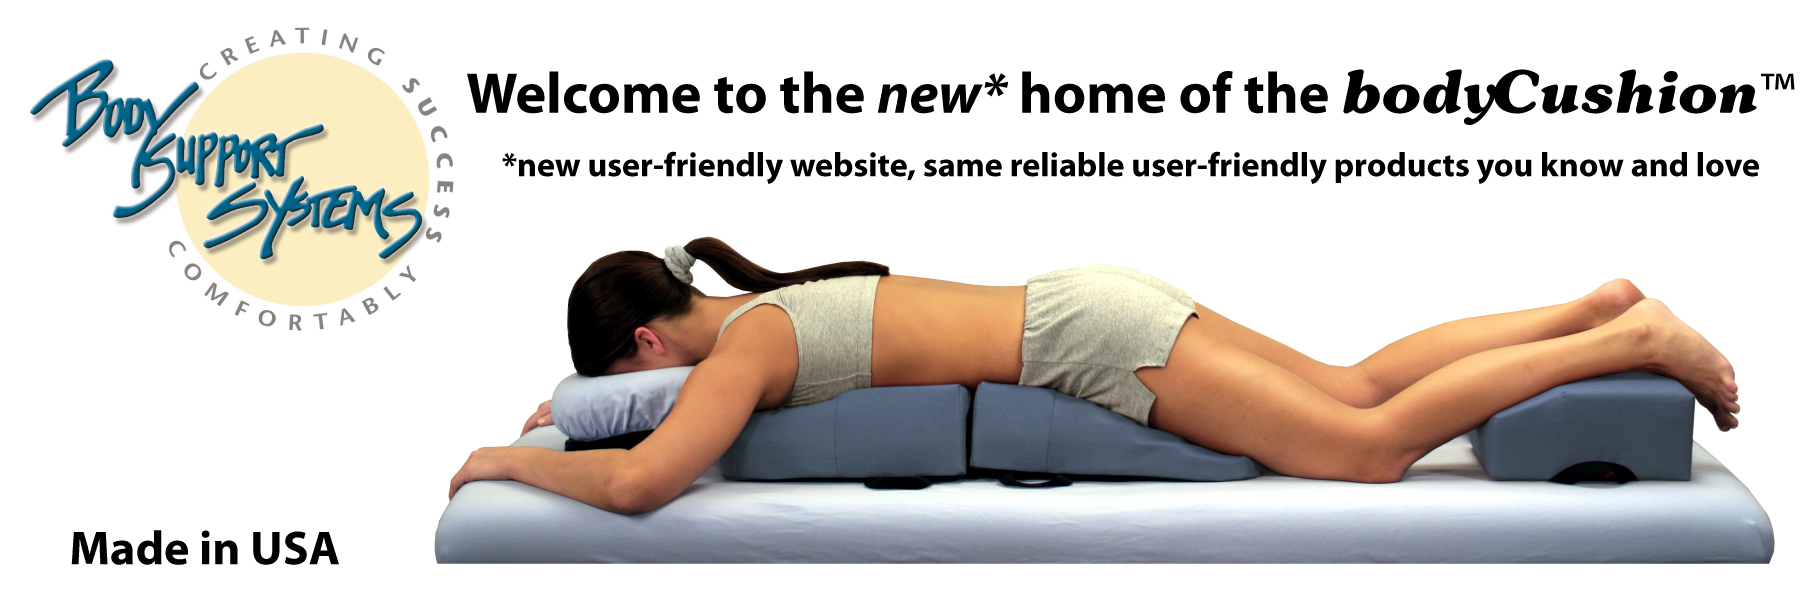 Welcome to the new home of the bodyCushion!